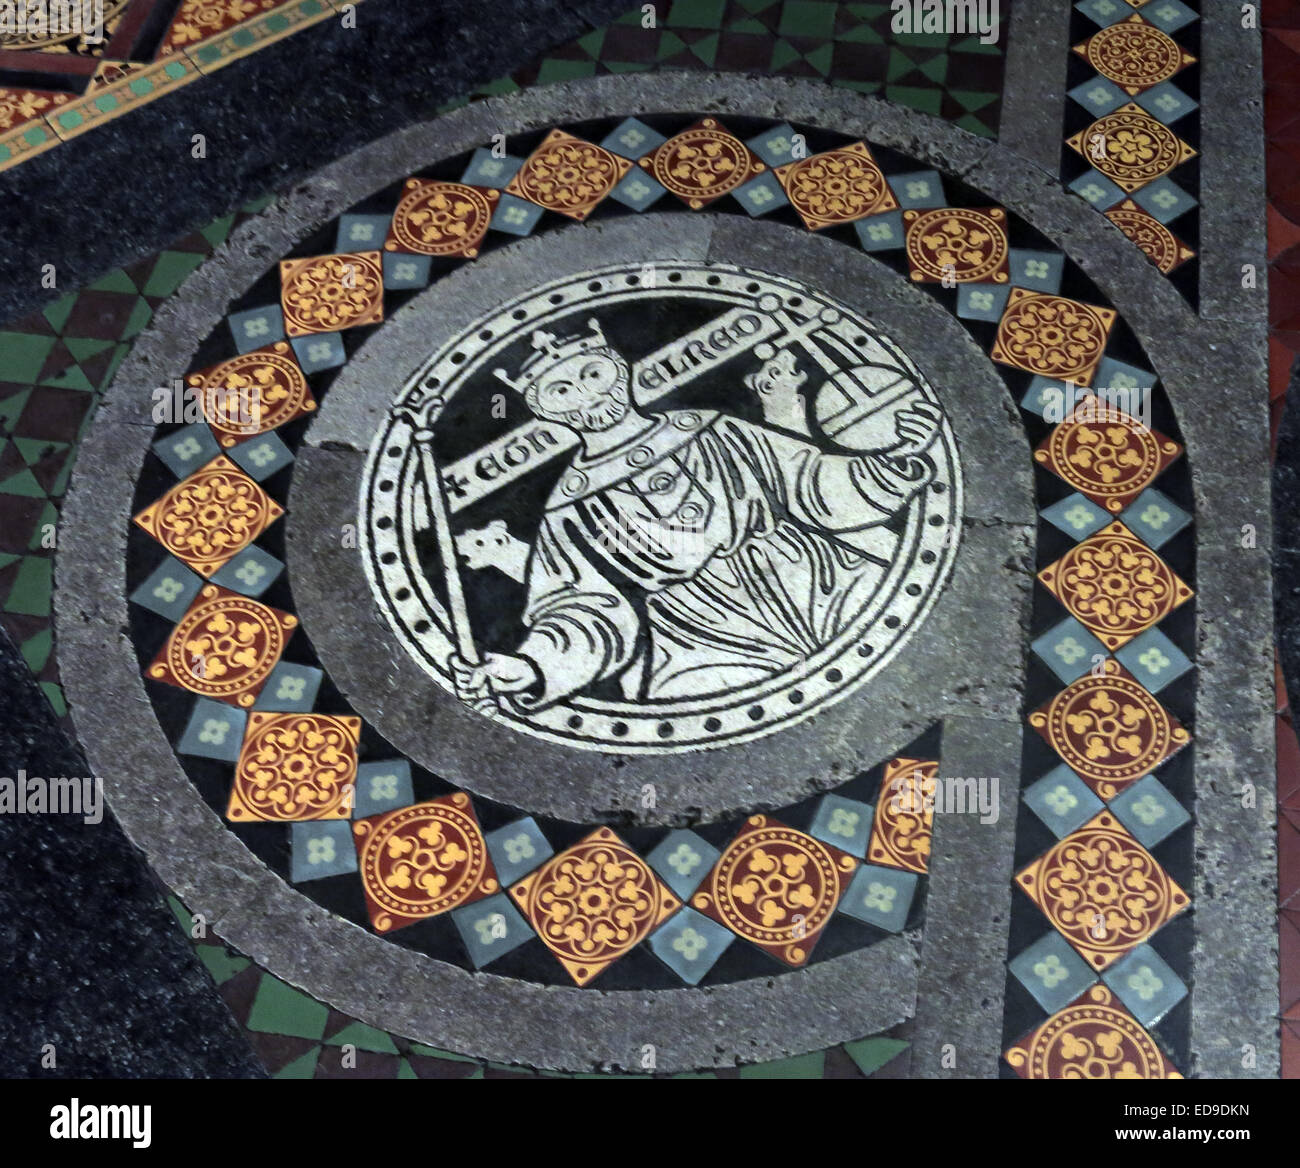 Tiles on floor at Lichfield cathedral, Staffordshire, England UK WS13 7LD leading to the high altar - Stock Image